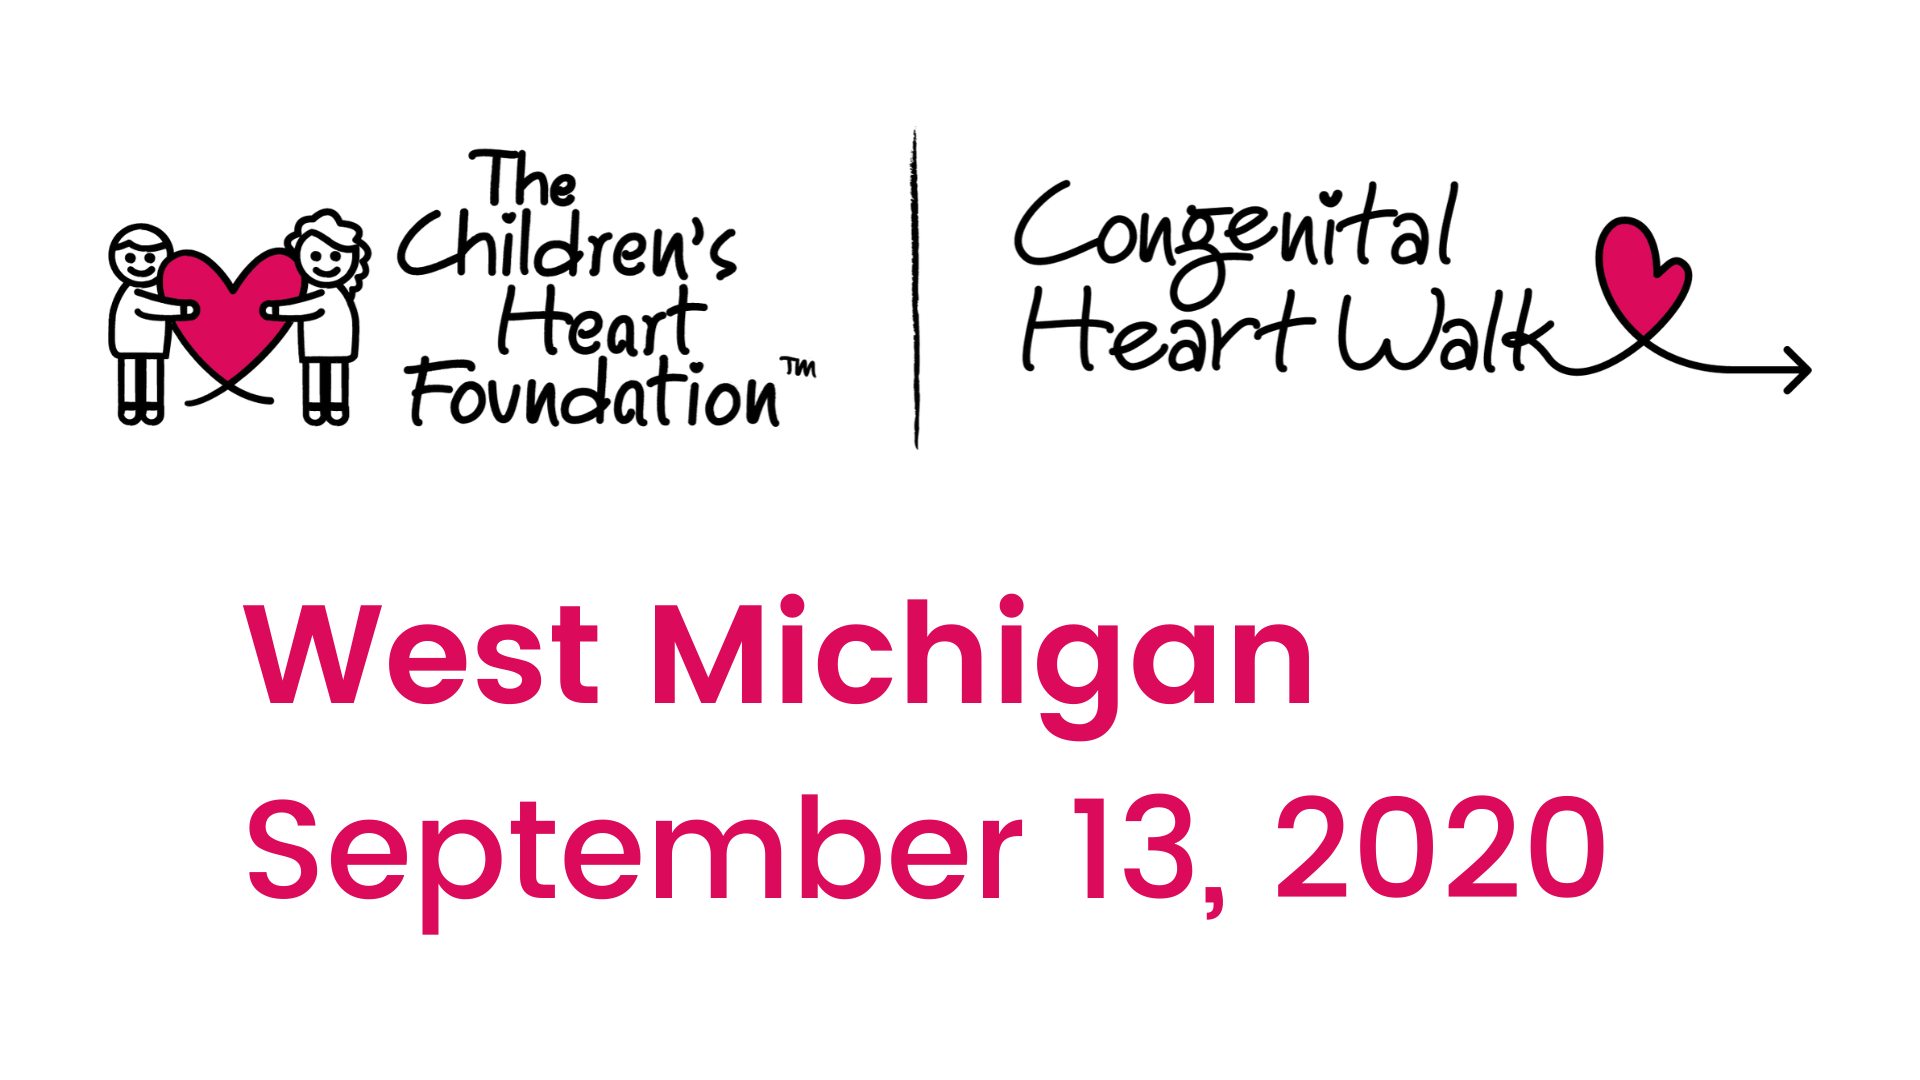 Western Michigan Congenital Heart Walk (Michigan)